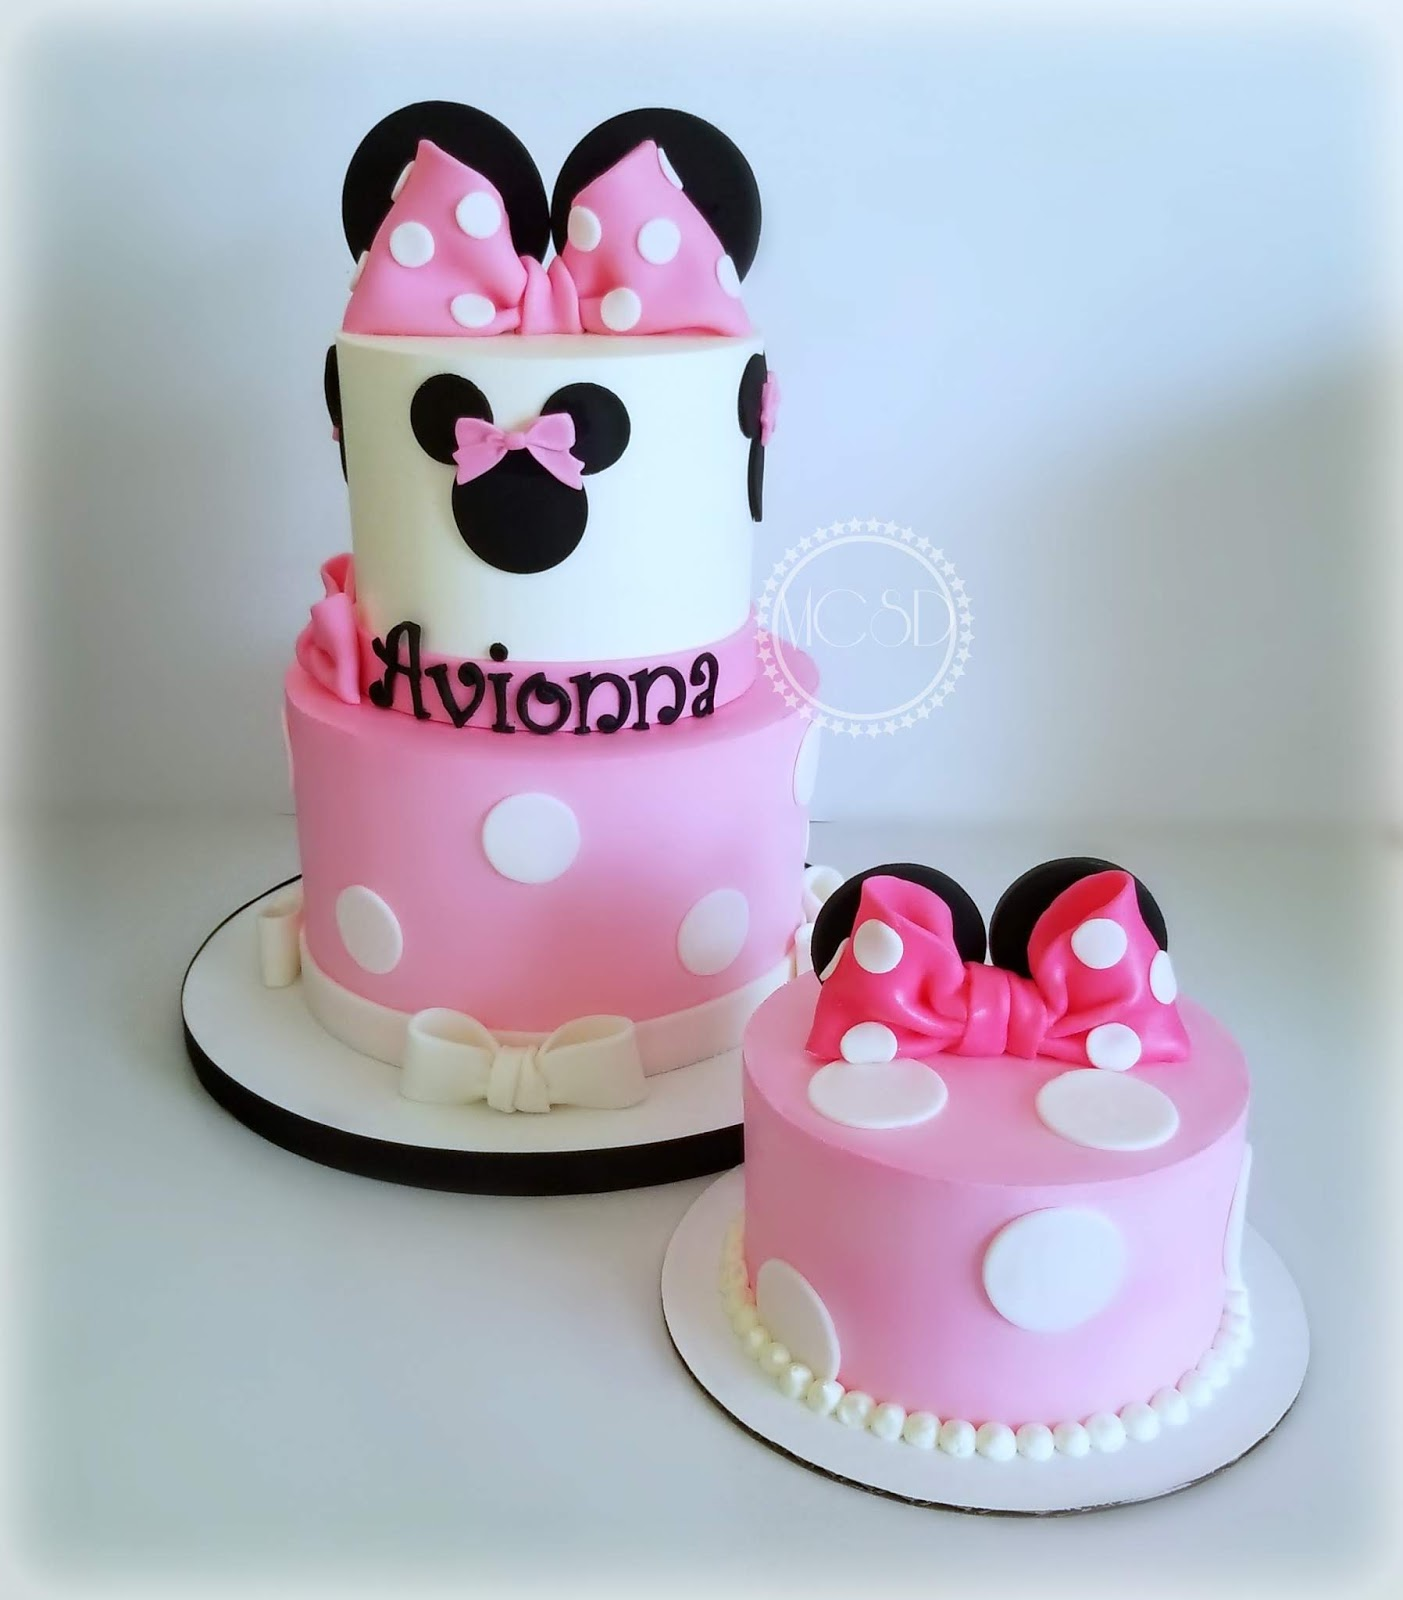 Peachy Cakesbyzana Minnie Mouse 1St Birthday Cake Funny Birthday Cards Online Unhofree Goldxyz